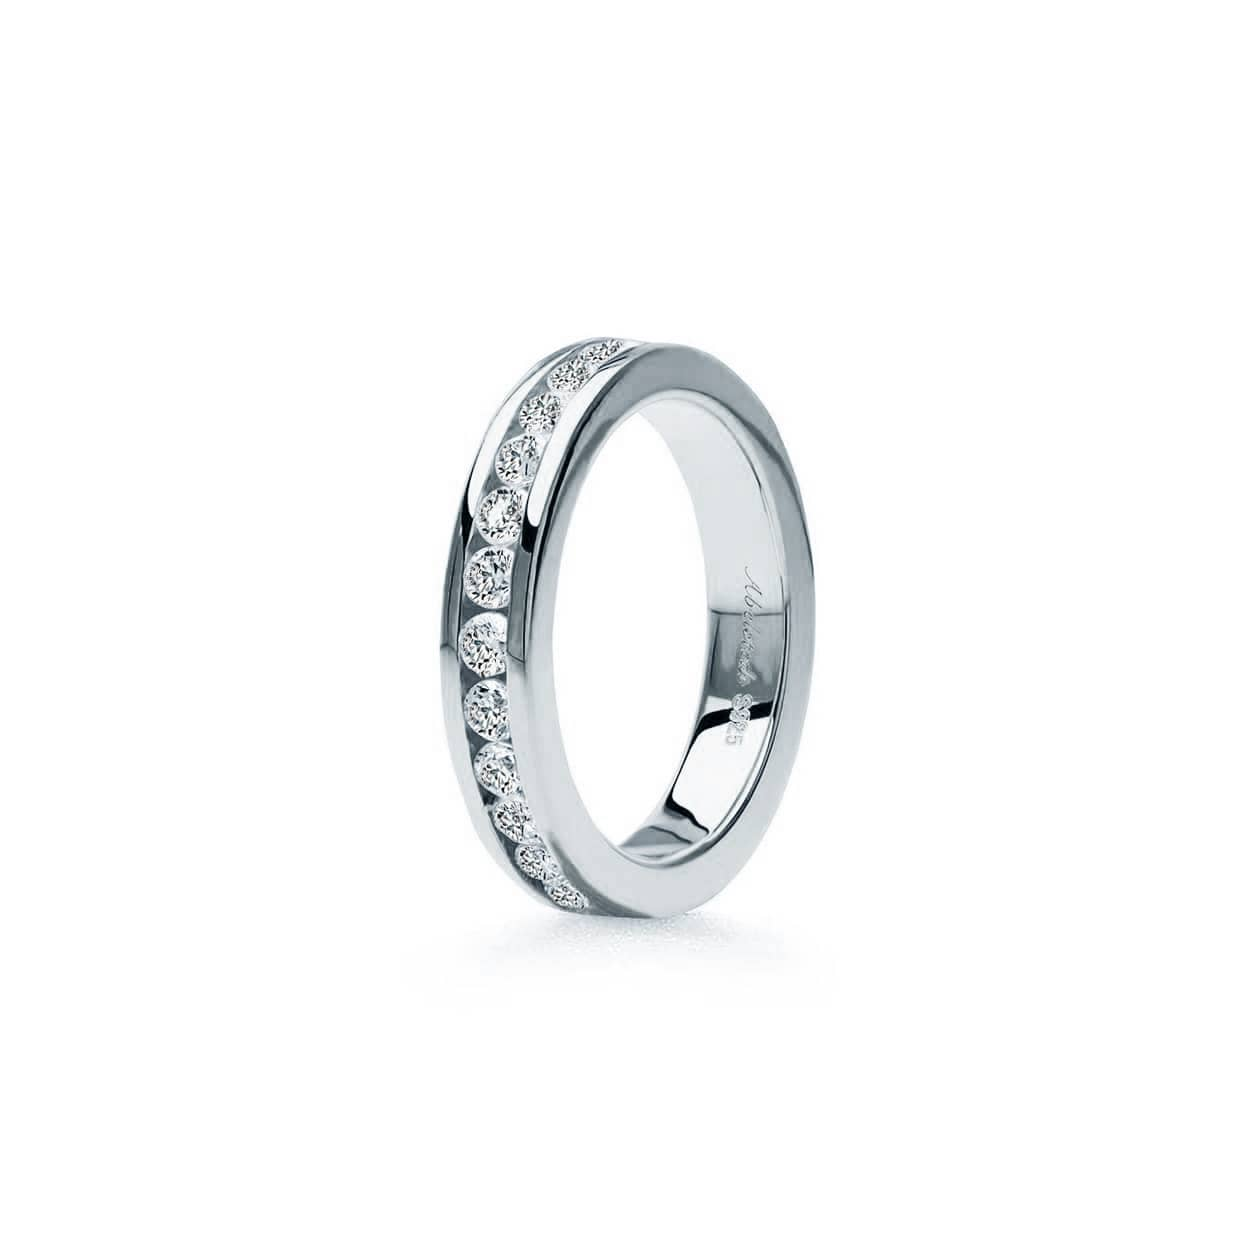 Oxford Silver Round Cut Eternity Ring - Abelstedt